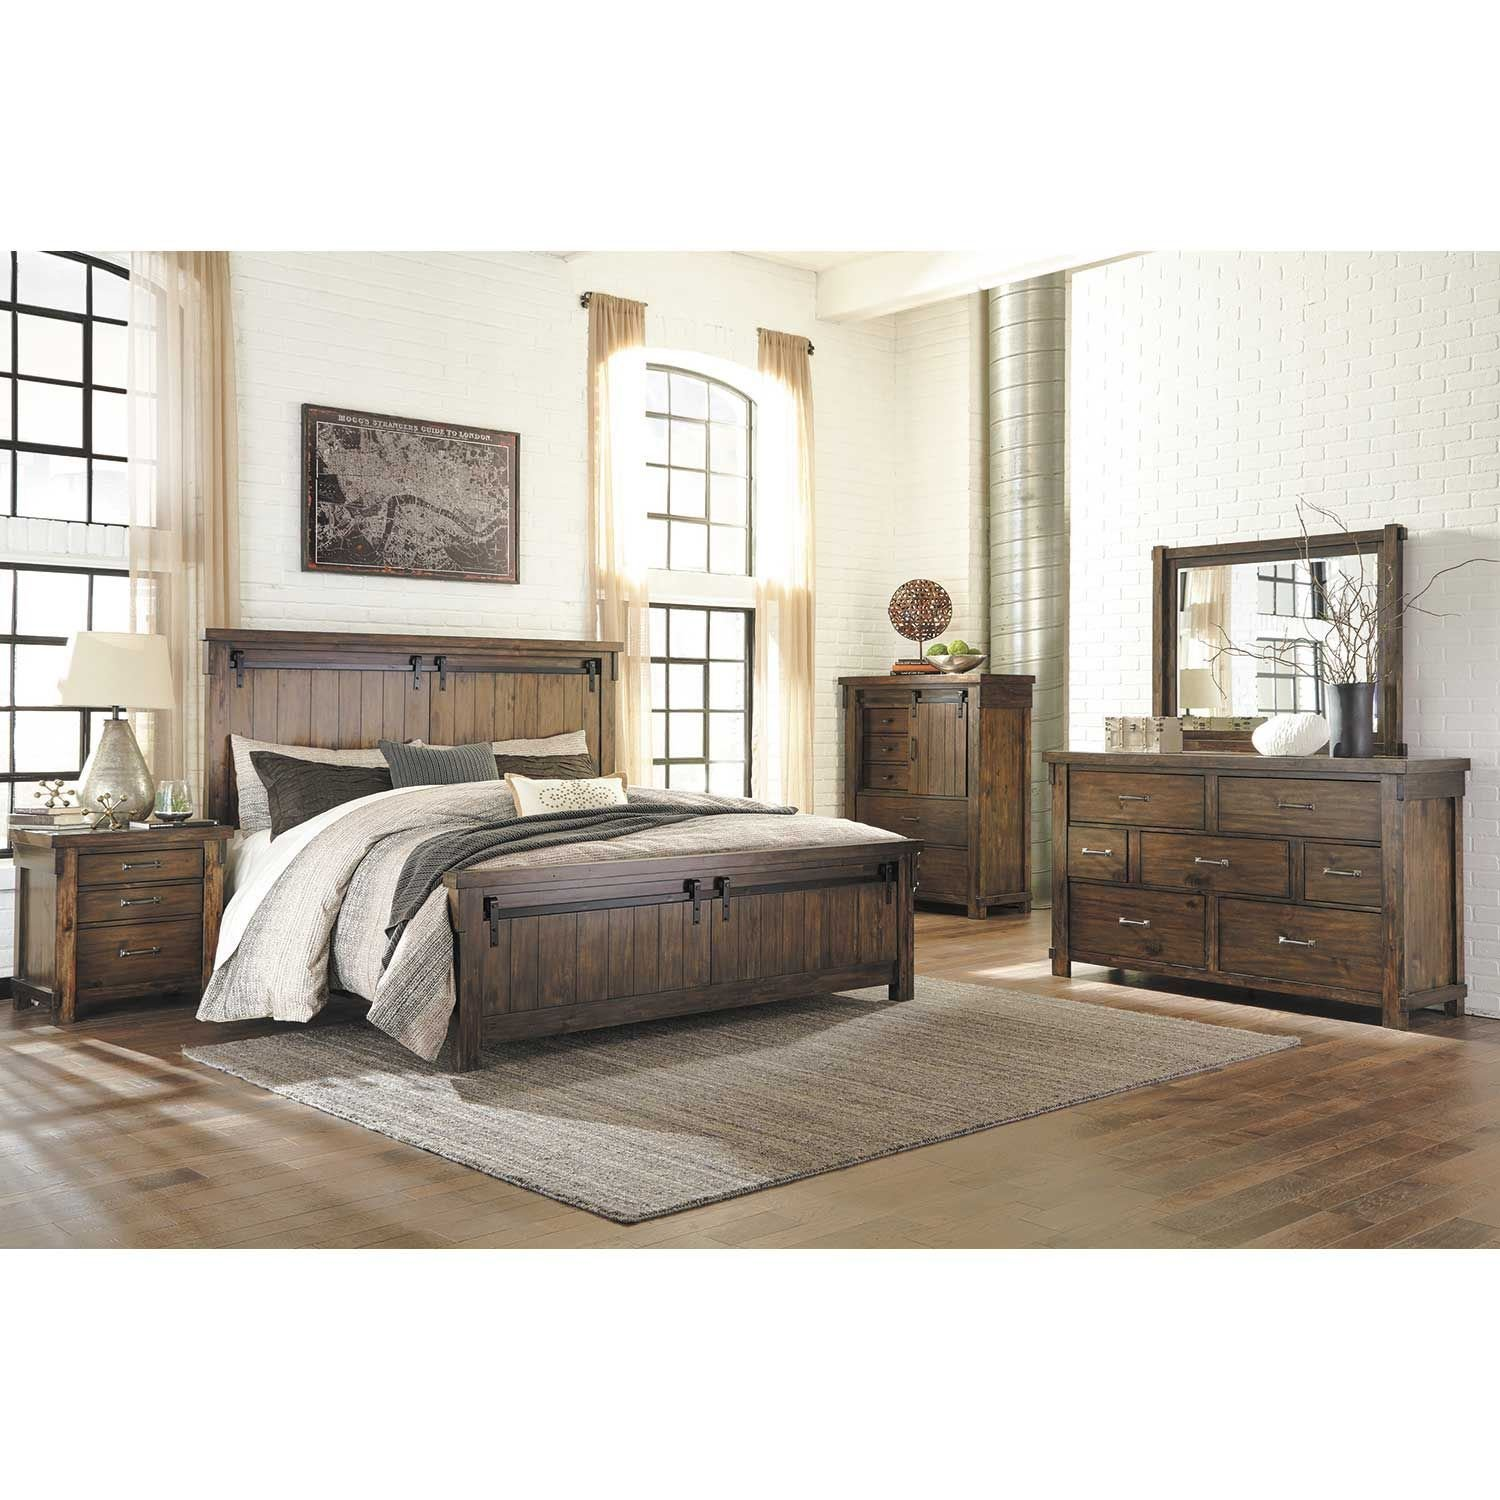 Lakeleigh 5 Piece Bedroom Set | B718-QBED/31/36/46/93 ...